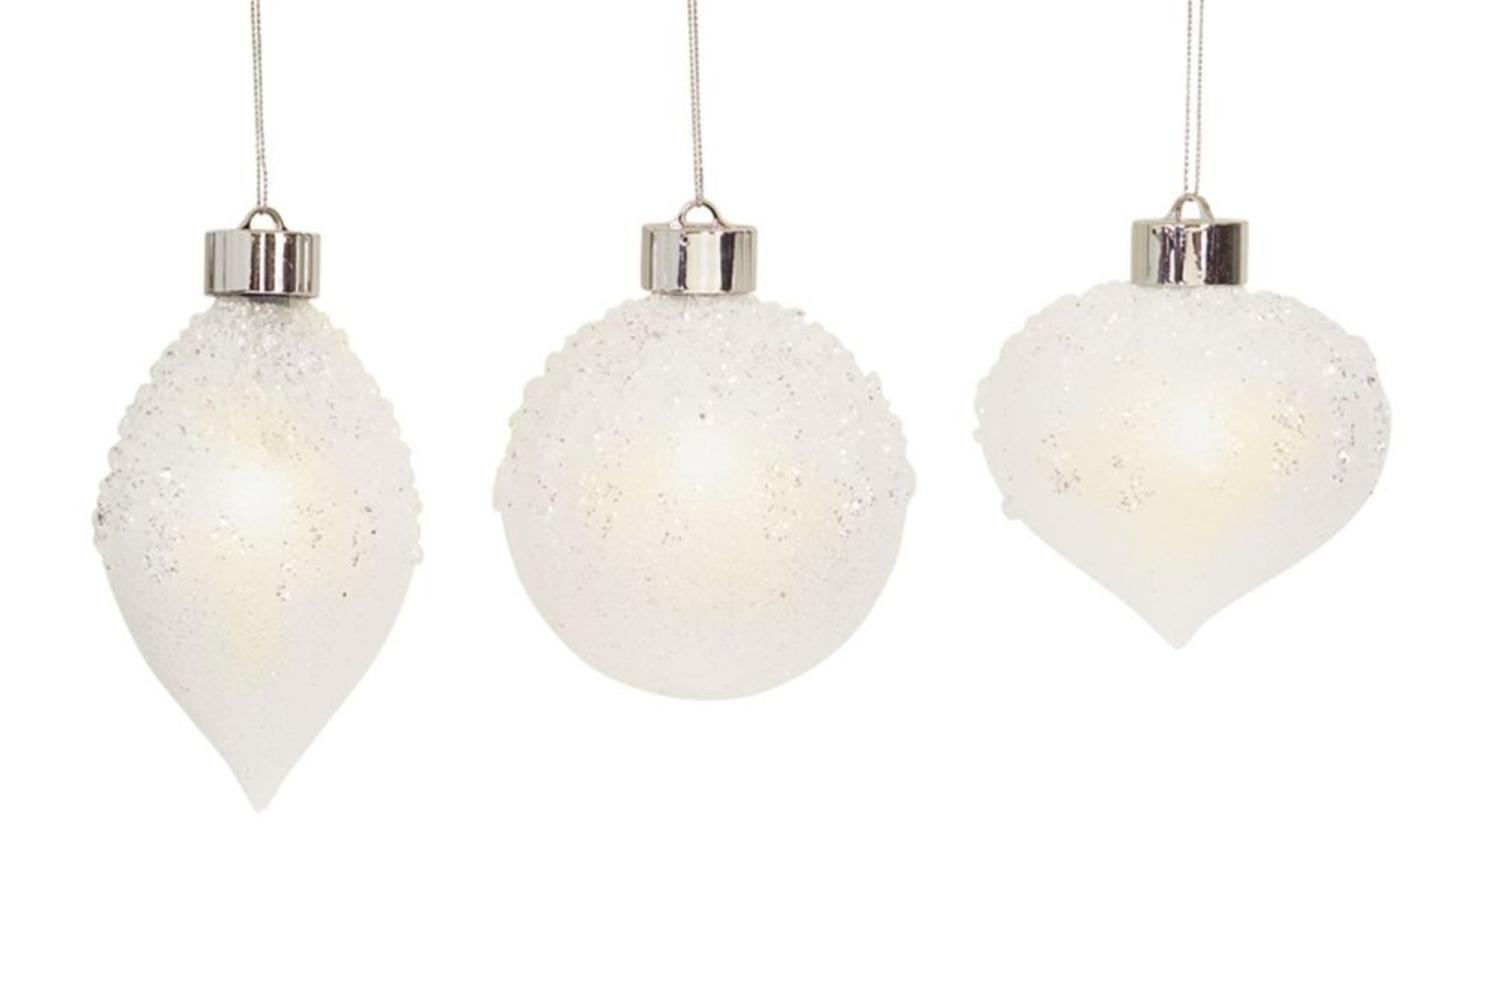 Pack of 6 Unique and Classy LED Iced Christmas Glass Ornament with Remote 5.25''